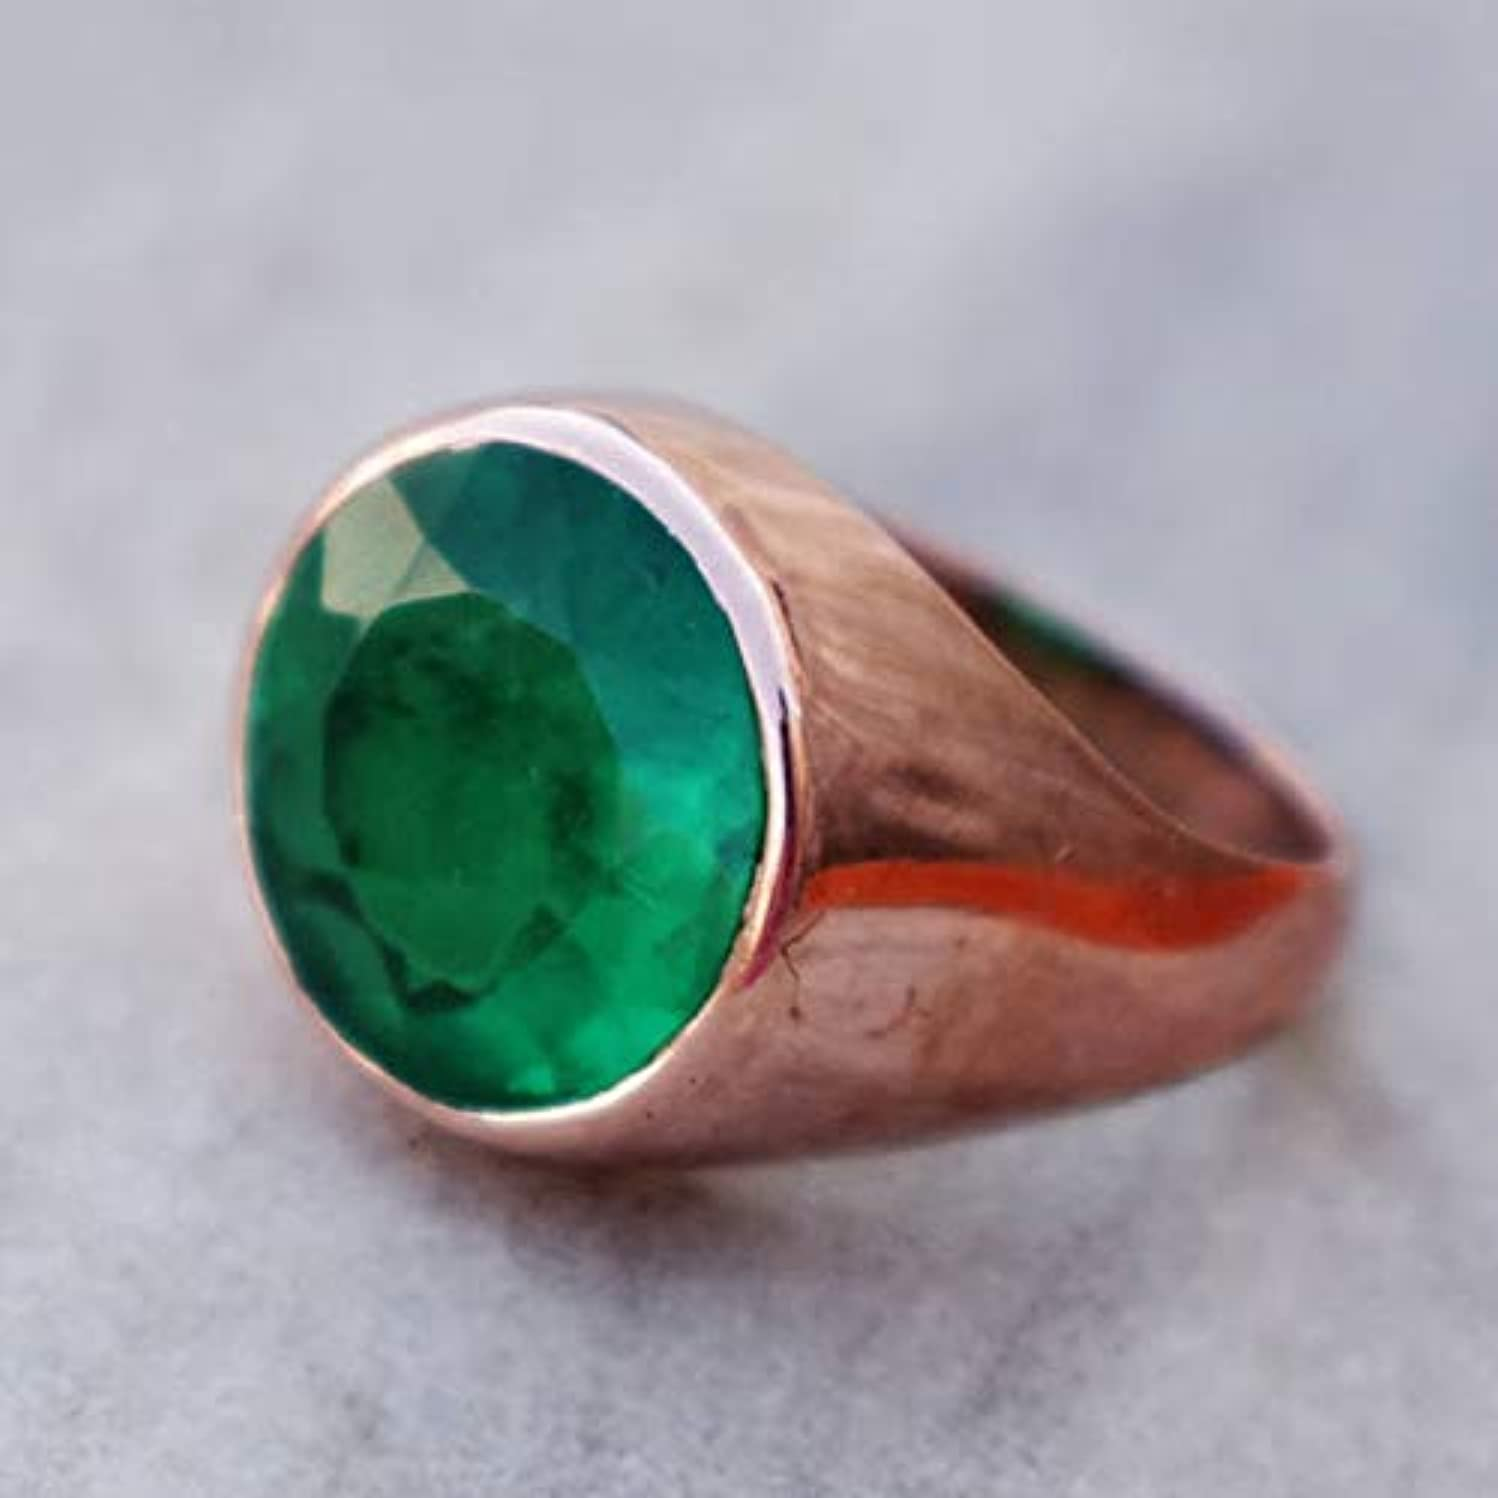 Men's Emerald Hydro Ring, 925 Sterling Silver Ring, Handmade Jewelry Ring, Unique Gift Ring, Beautiful Green Ring, Rose Gold Emerald Ring, Wedding Gift Jewelry